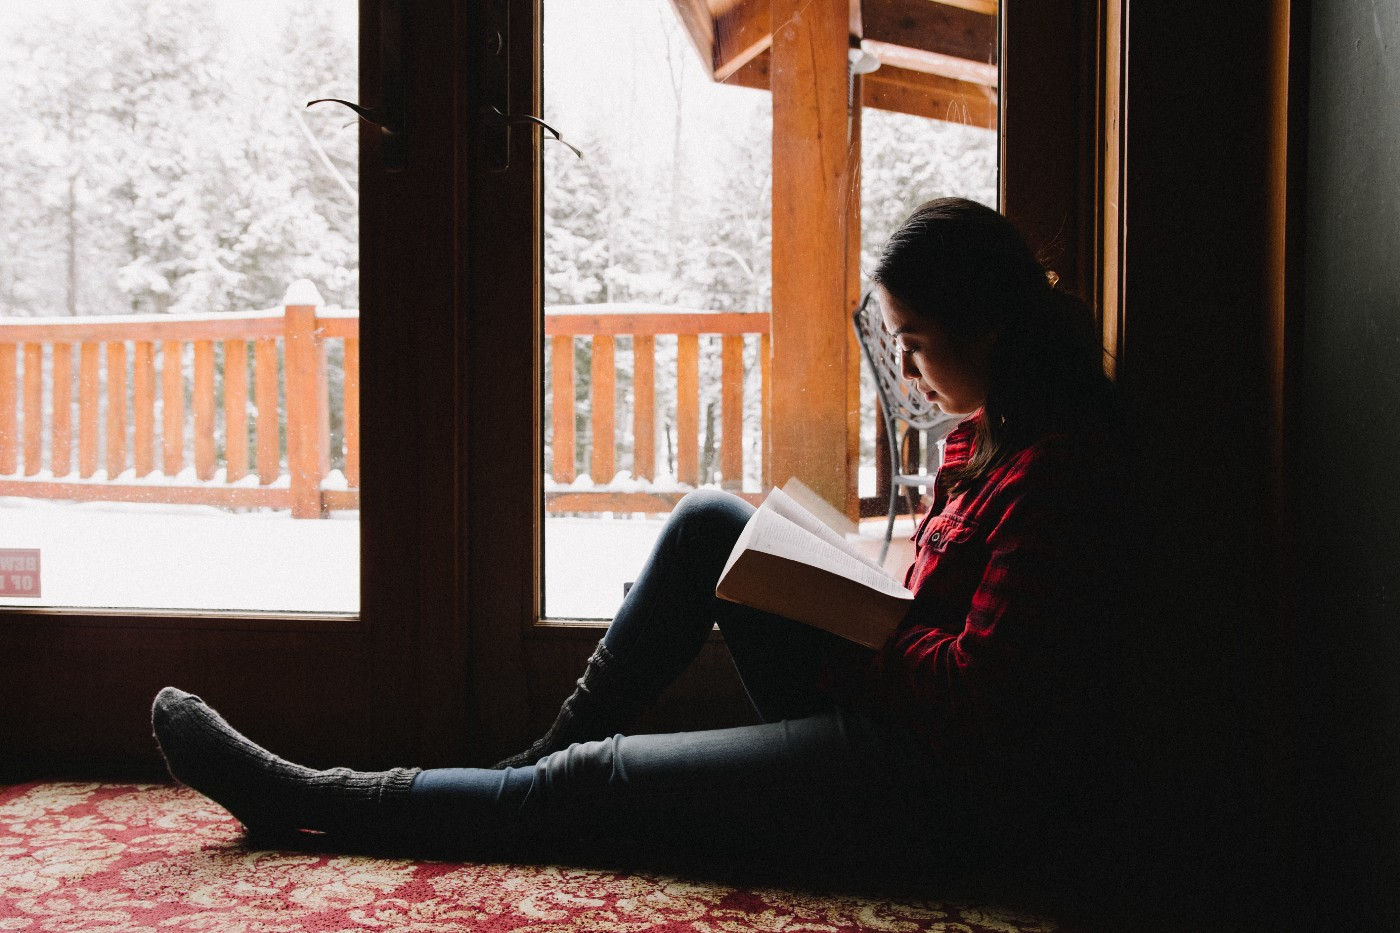 A woman reads a book on the carpet of her home with the natural light of a winter wonderland in her backyard illuminating the background.